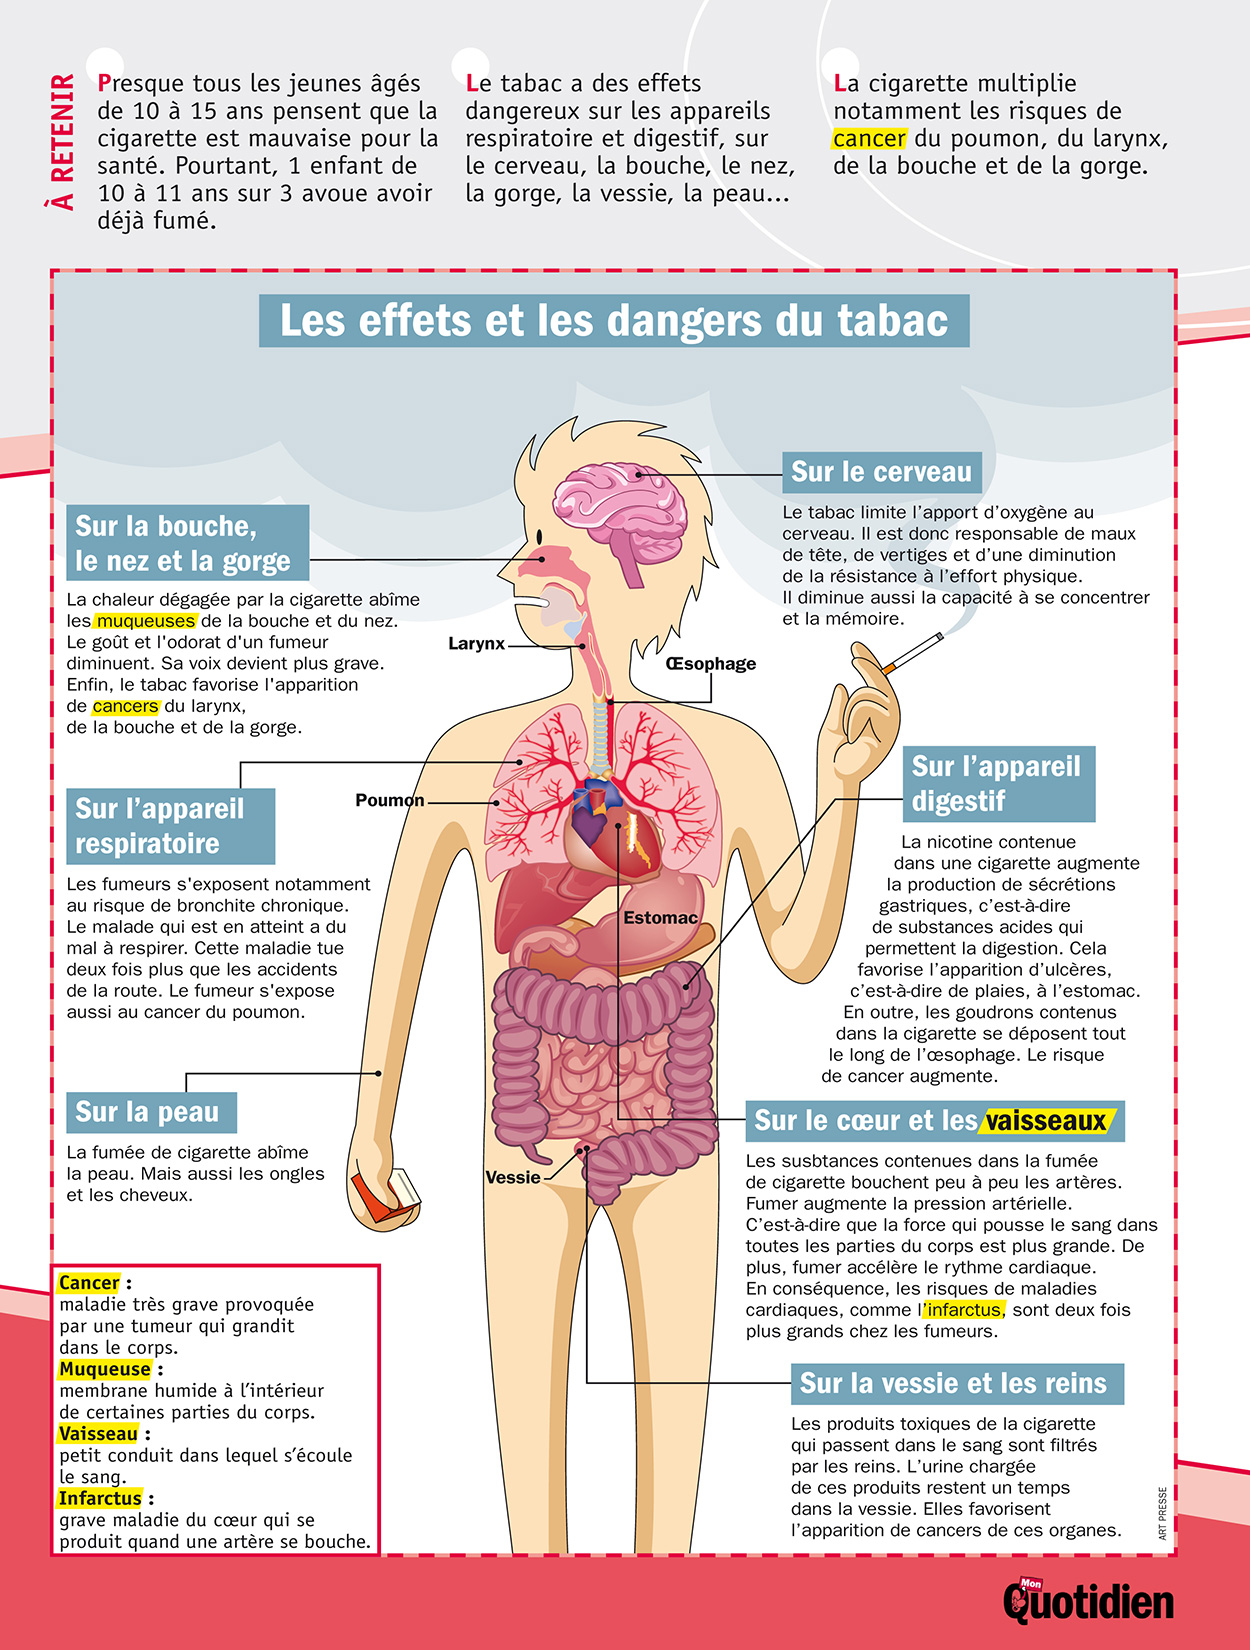 infographie mon quotidien les effets et les dangers du tabac lig 39 up communaut ducative. Black Bedroom Furniture Sets. Home Design Ideas